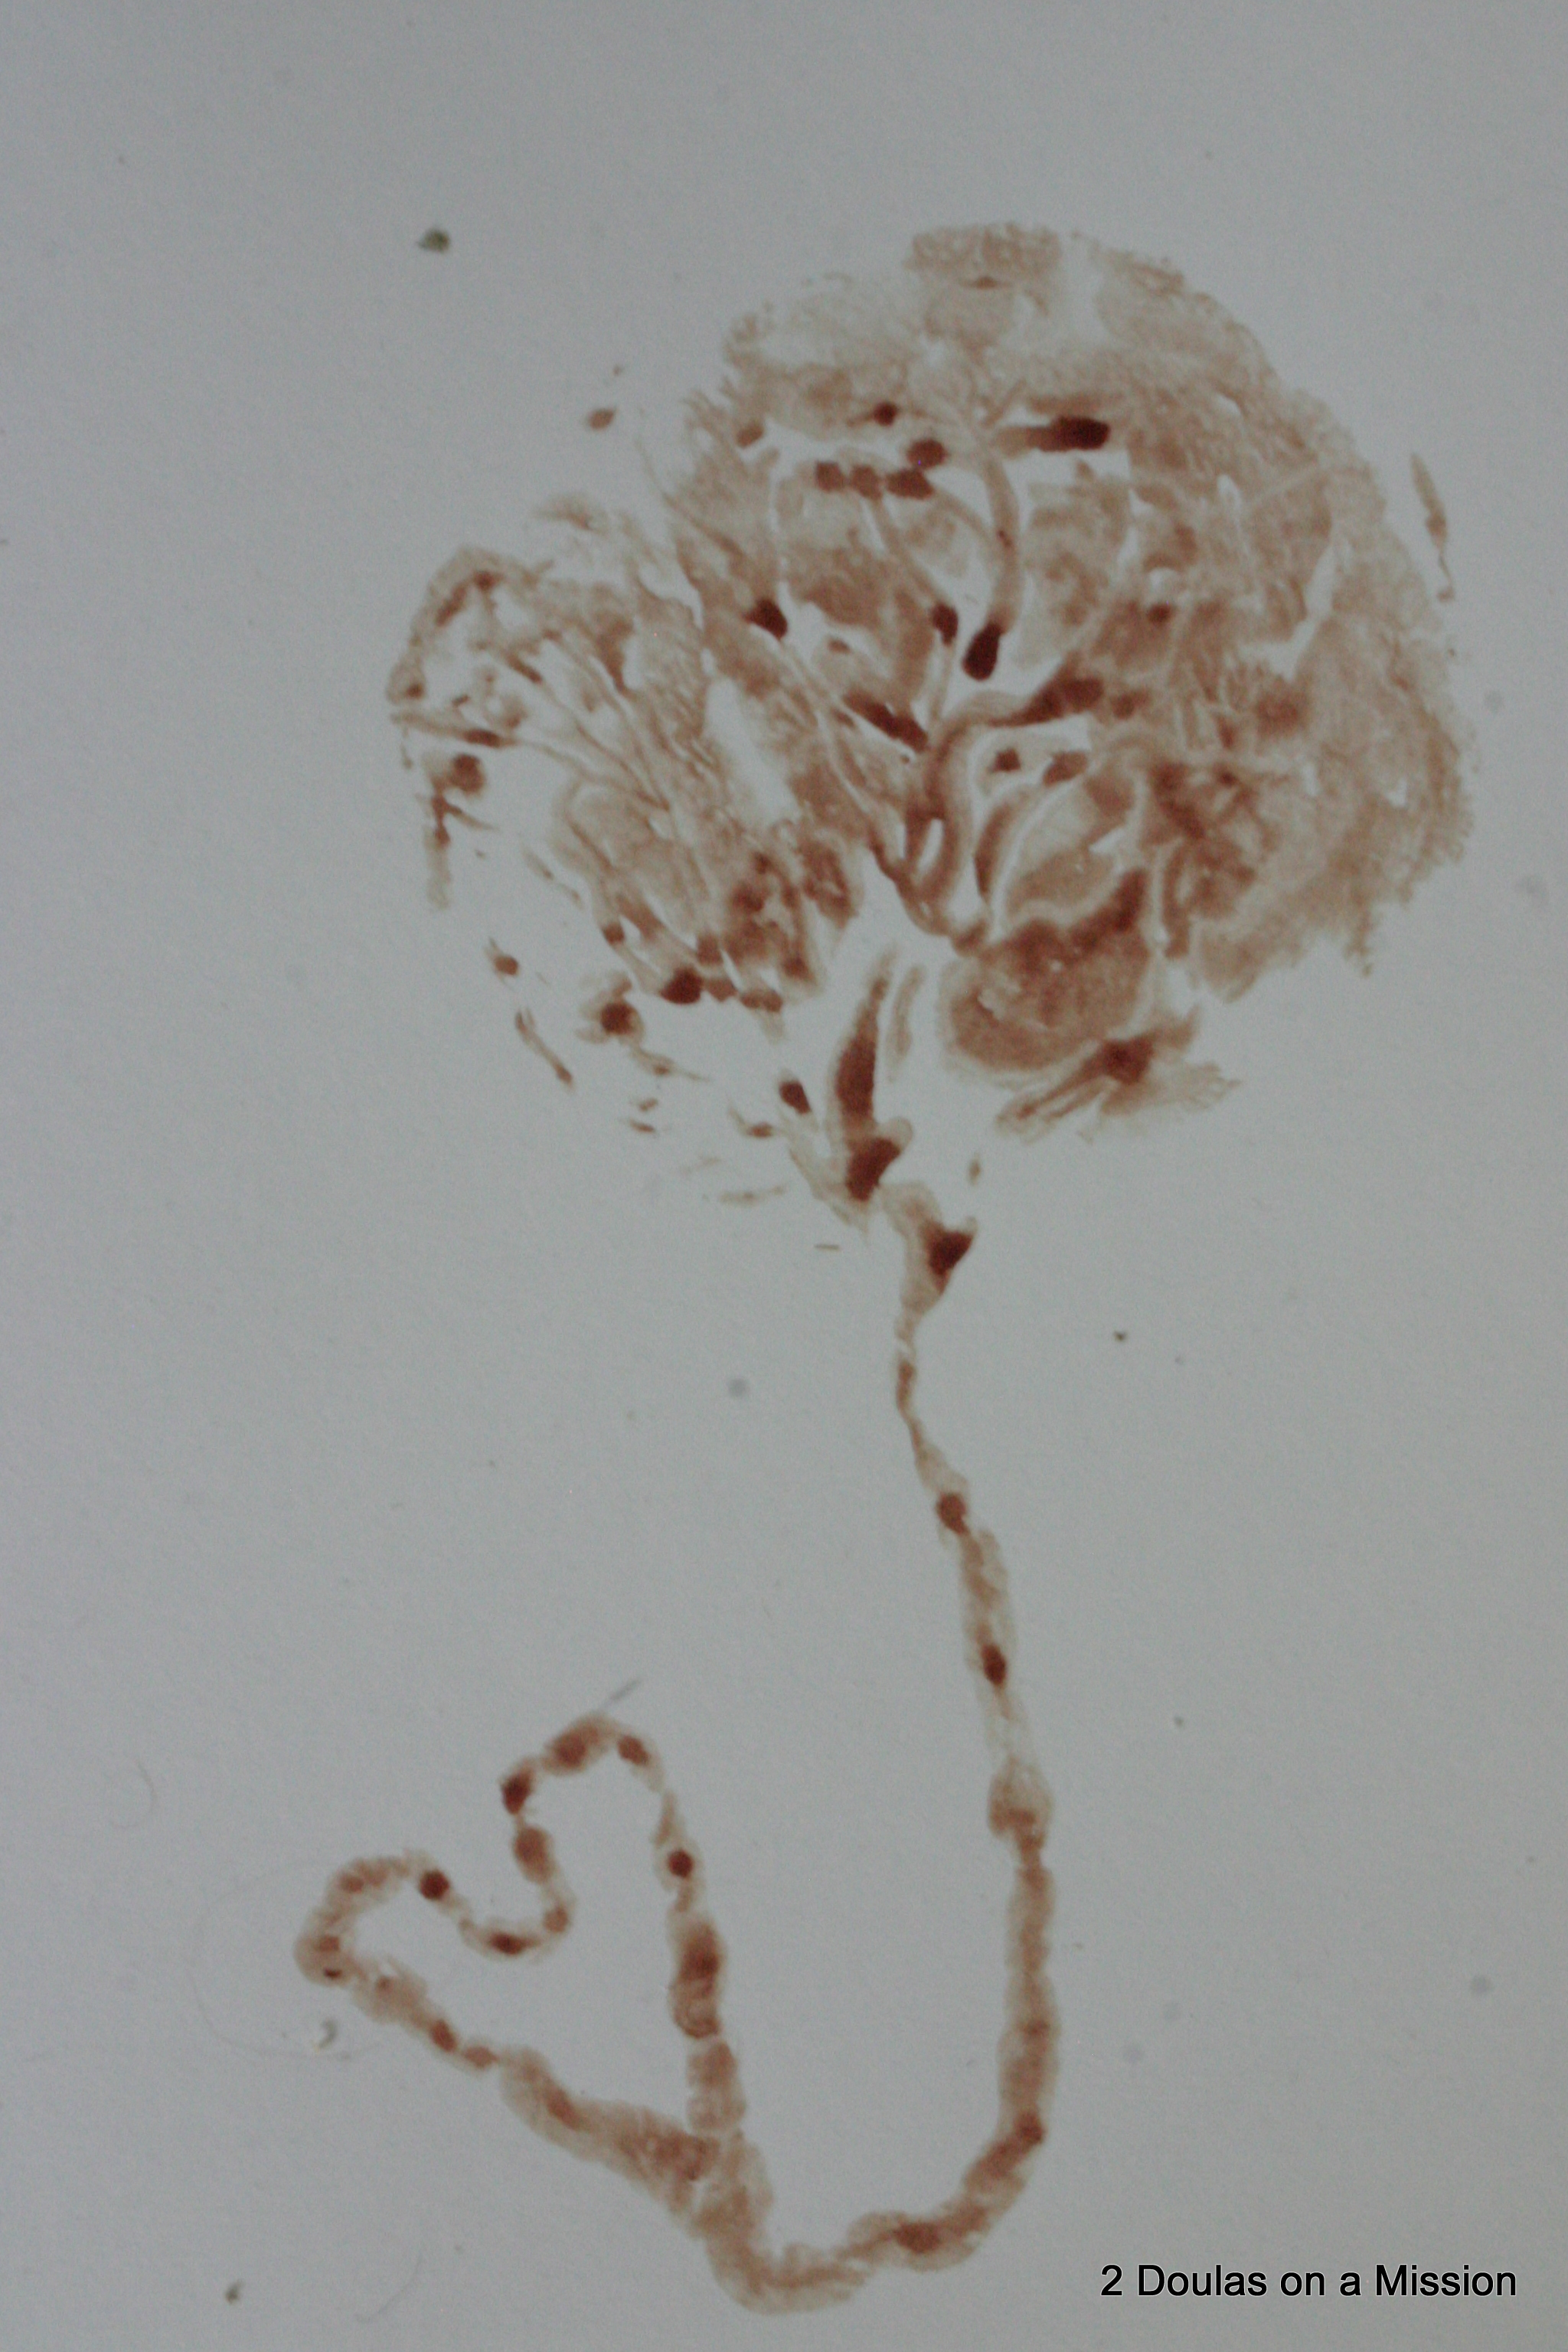 Placenta Prints:  can be made using the blood from the placenta, or edible, non-toxic paint. Prints can be done on watercolor paper, or on canvas.